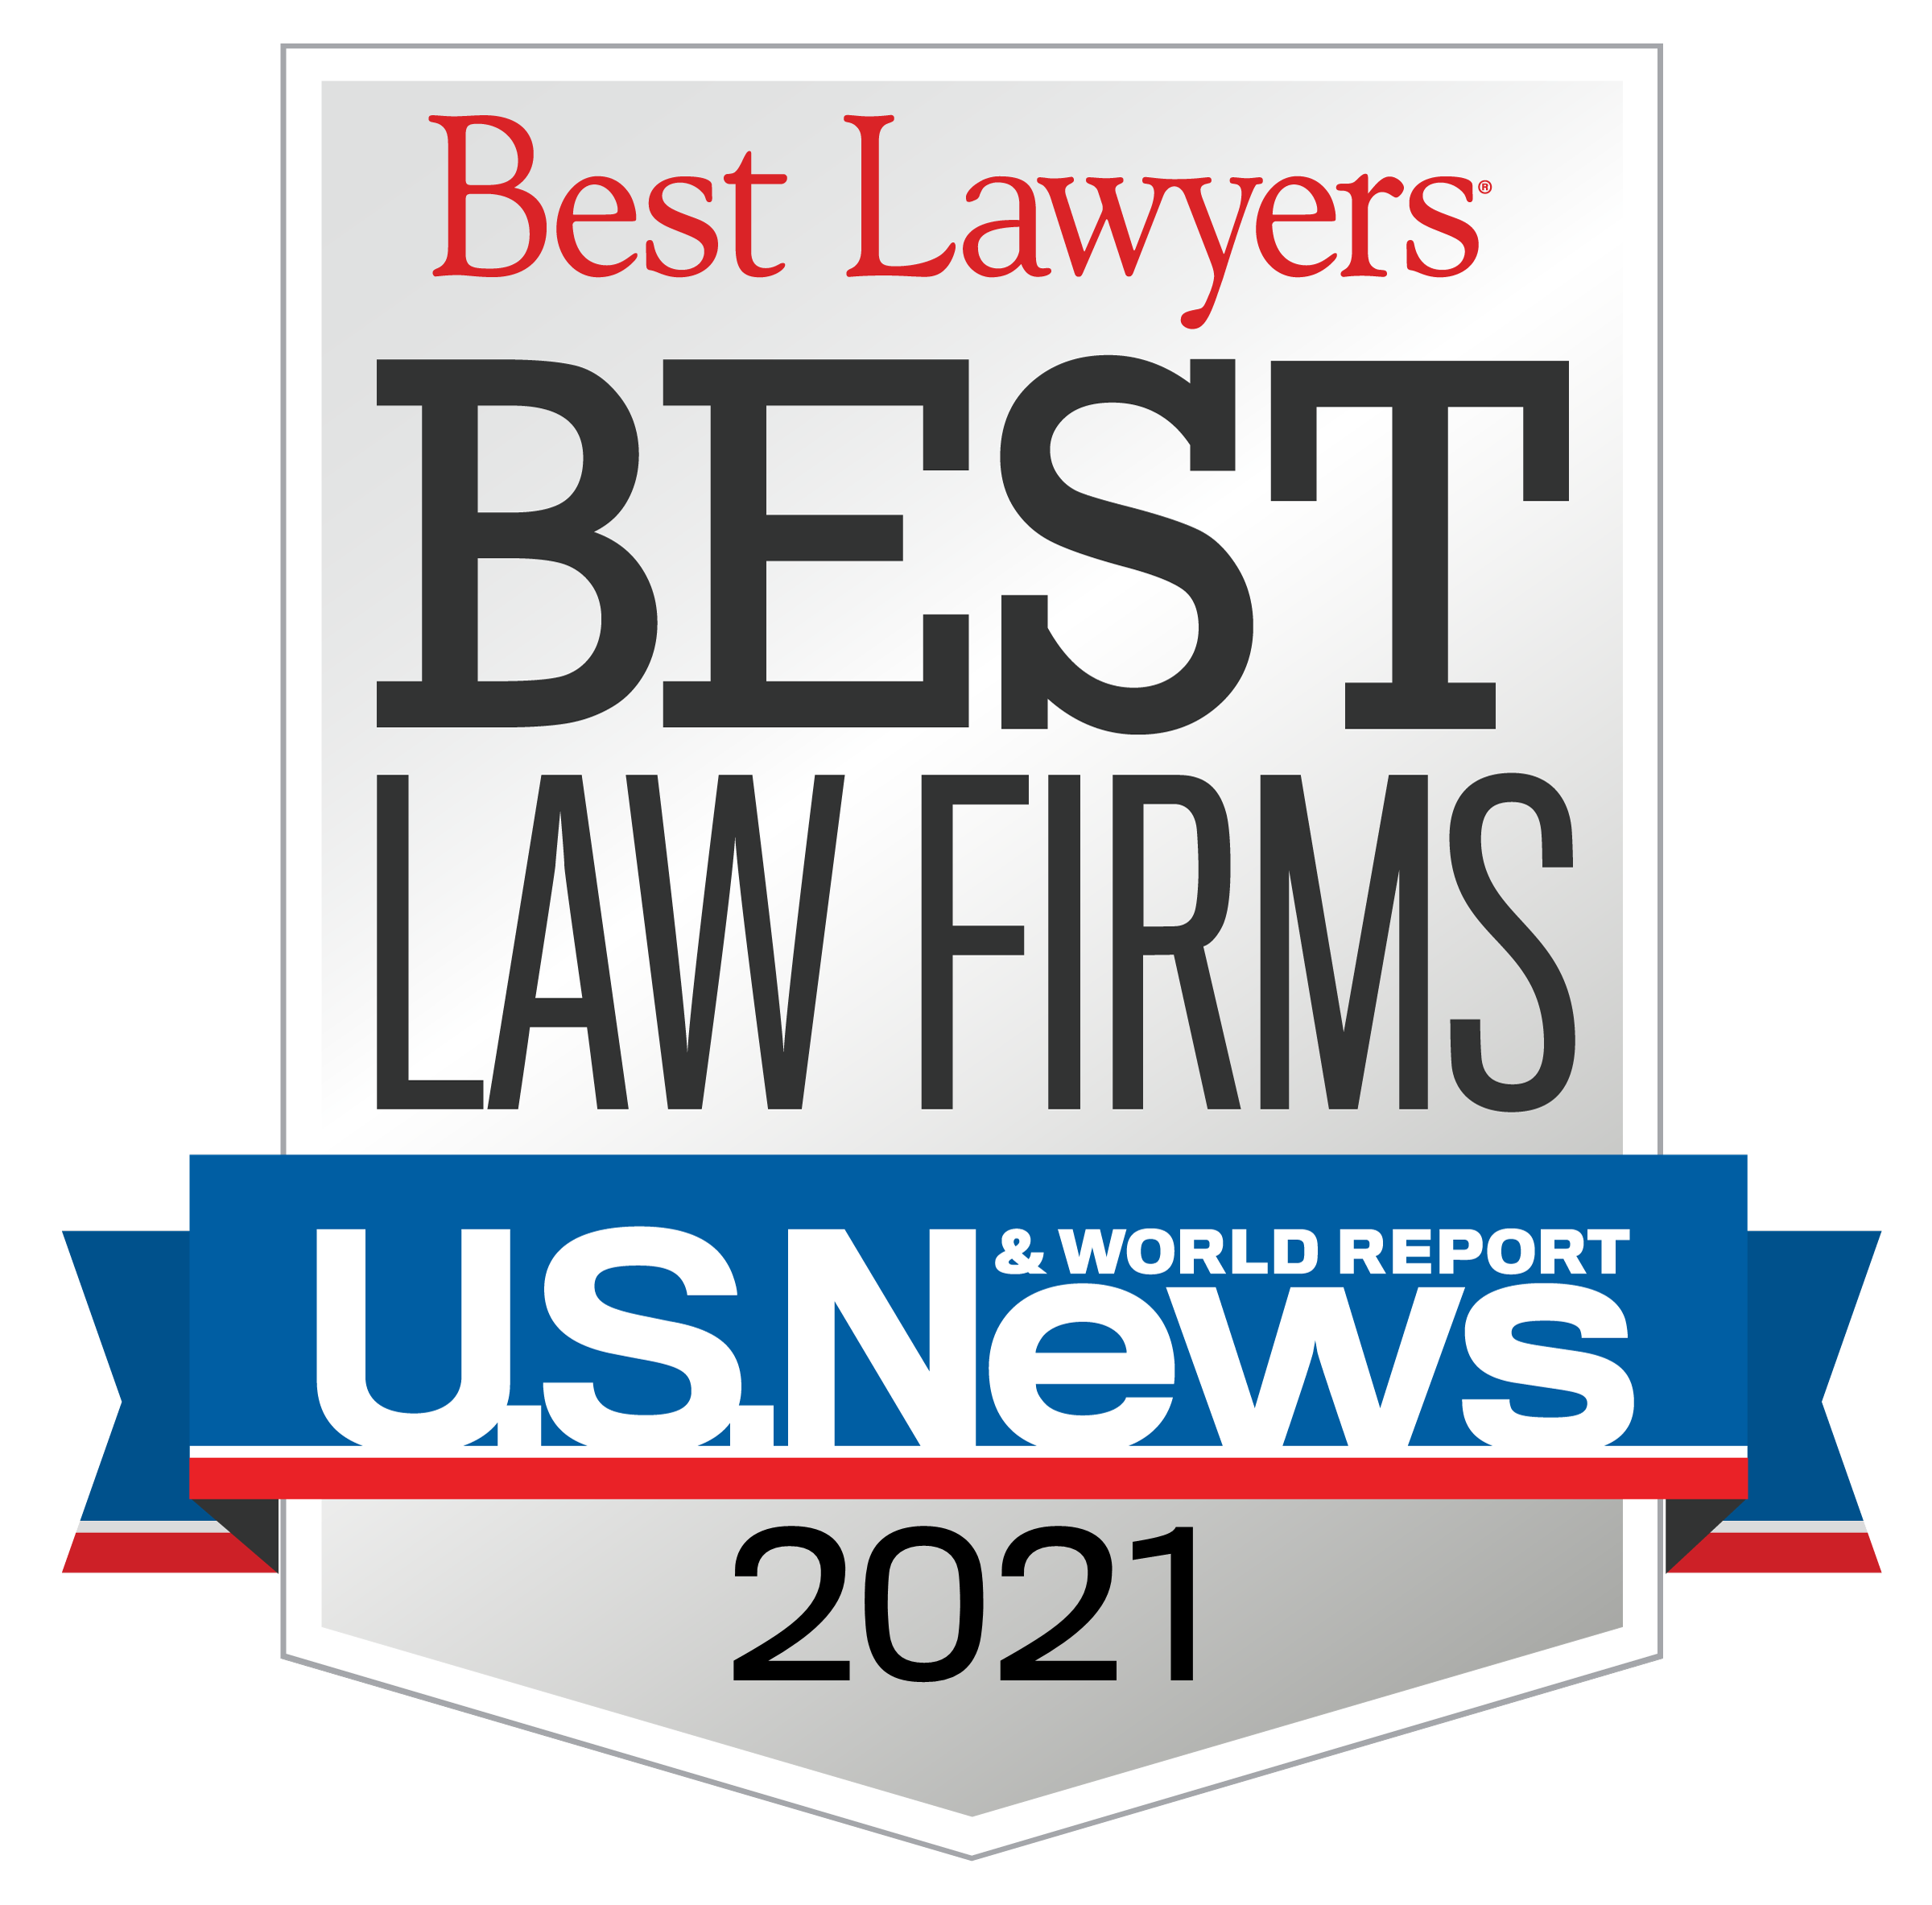 US News Best Law Firms 2021 Badge